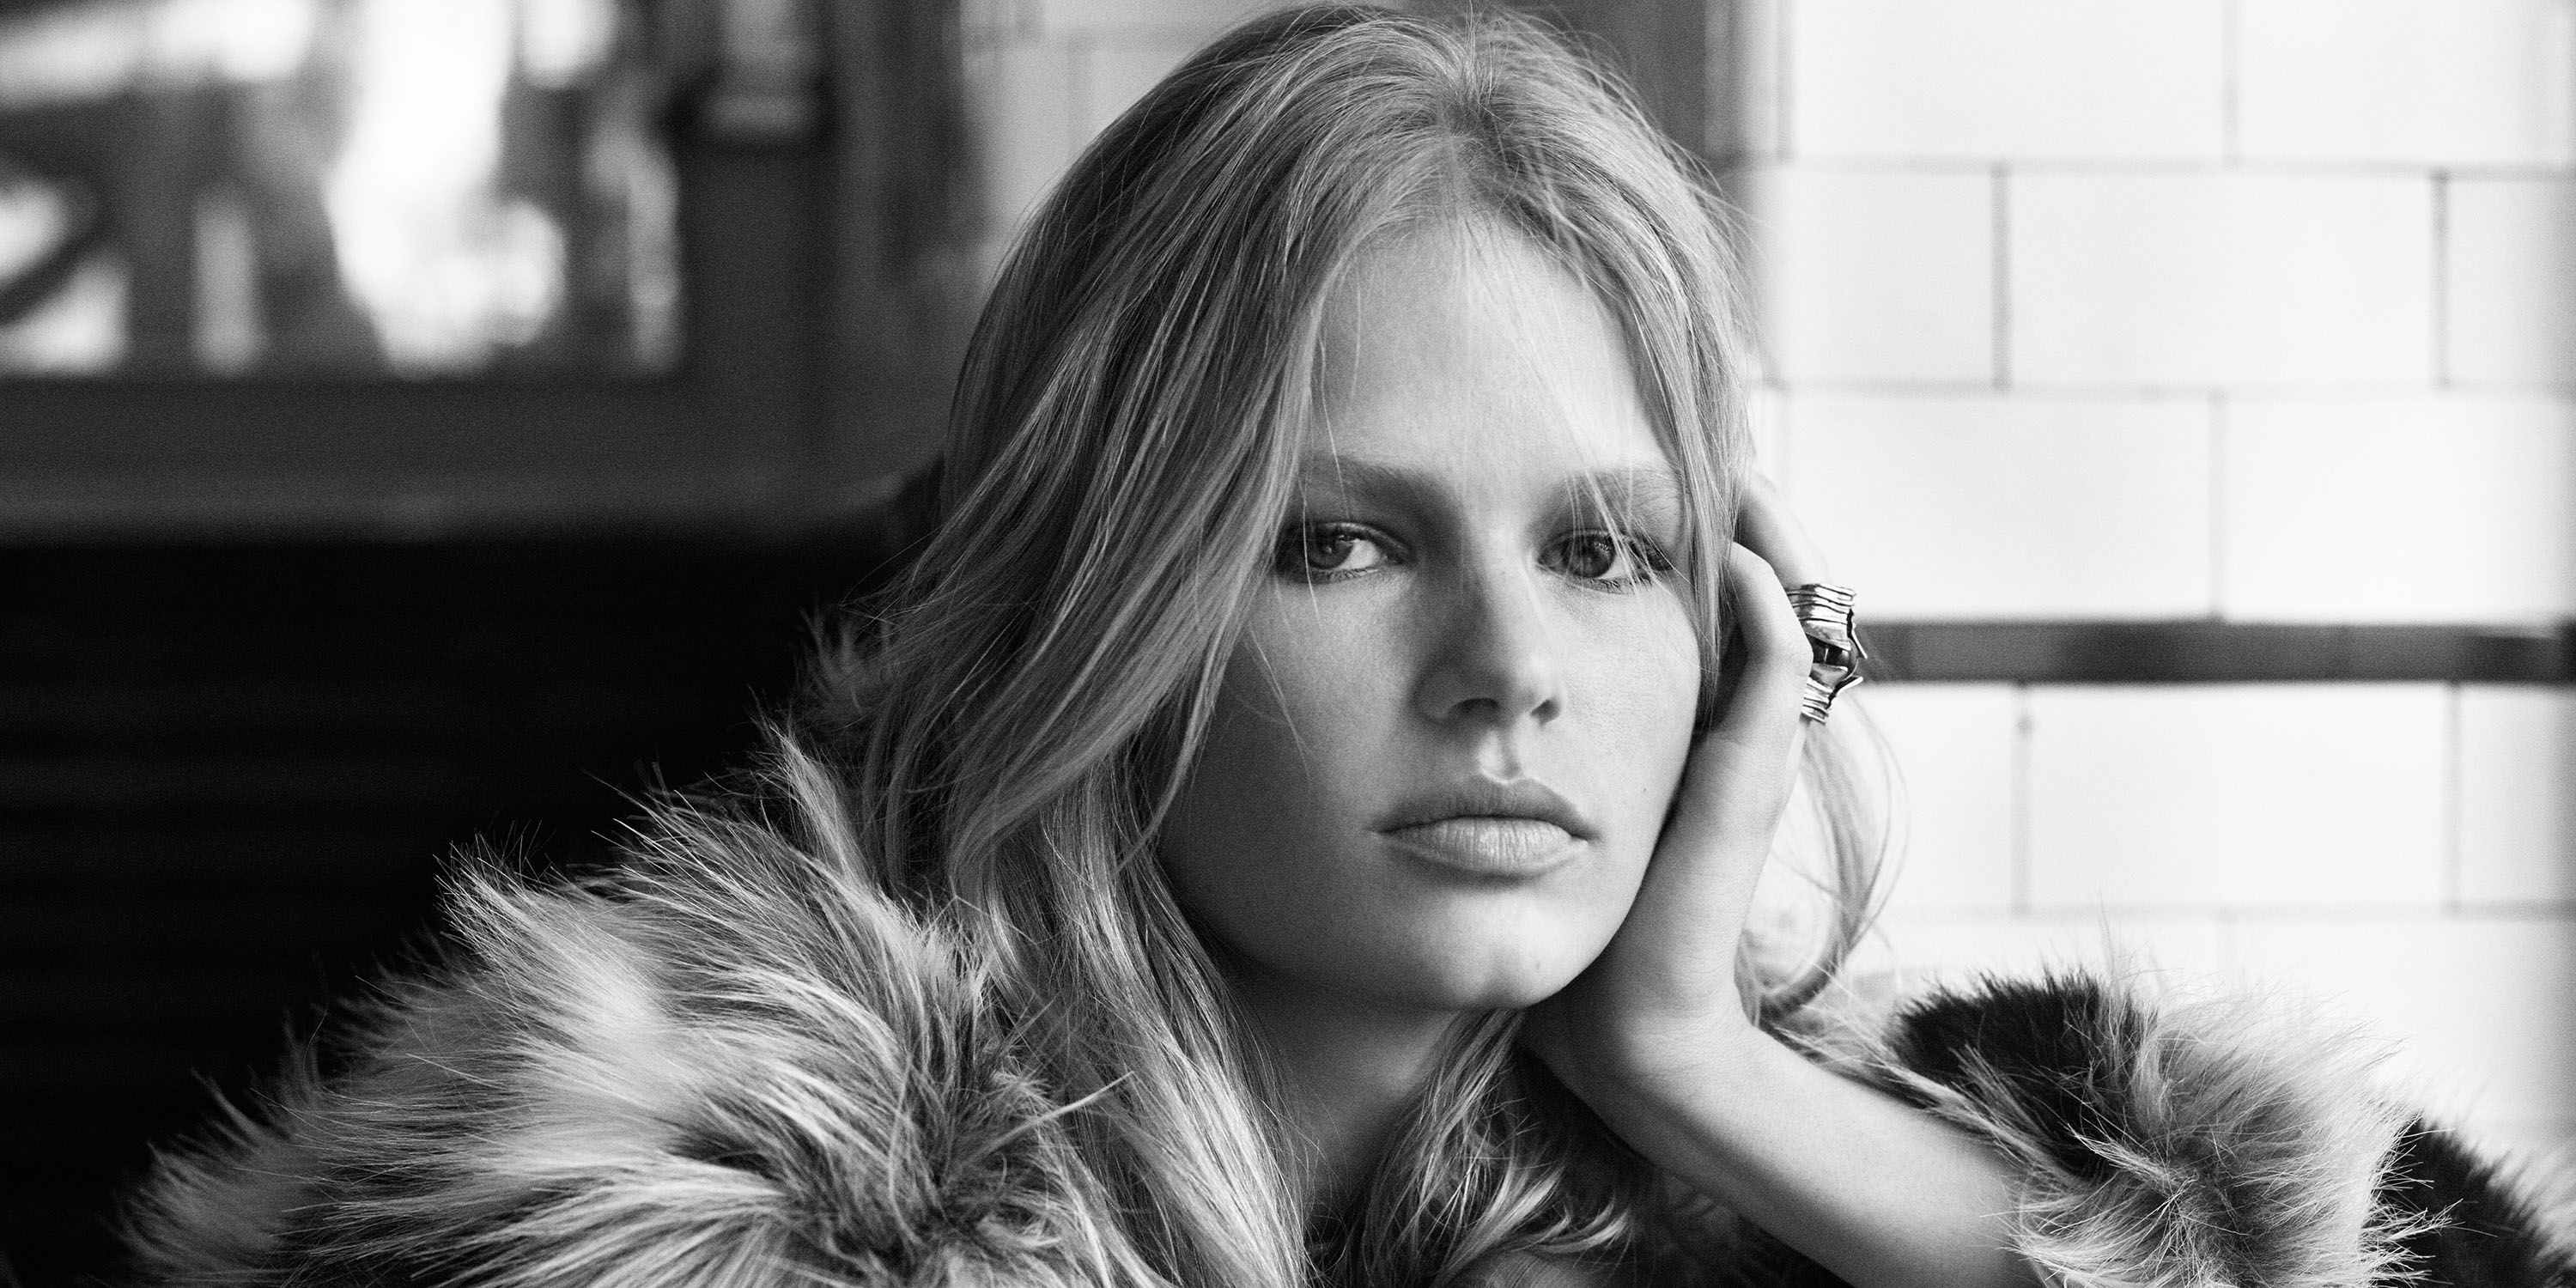 Anna Ewers Face Wallpapers - Anna Ewers Face Wallpapers